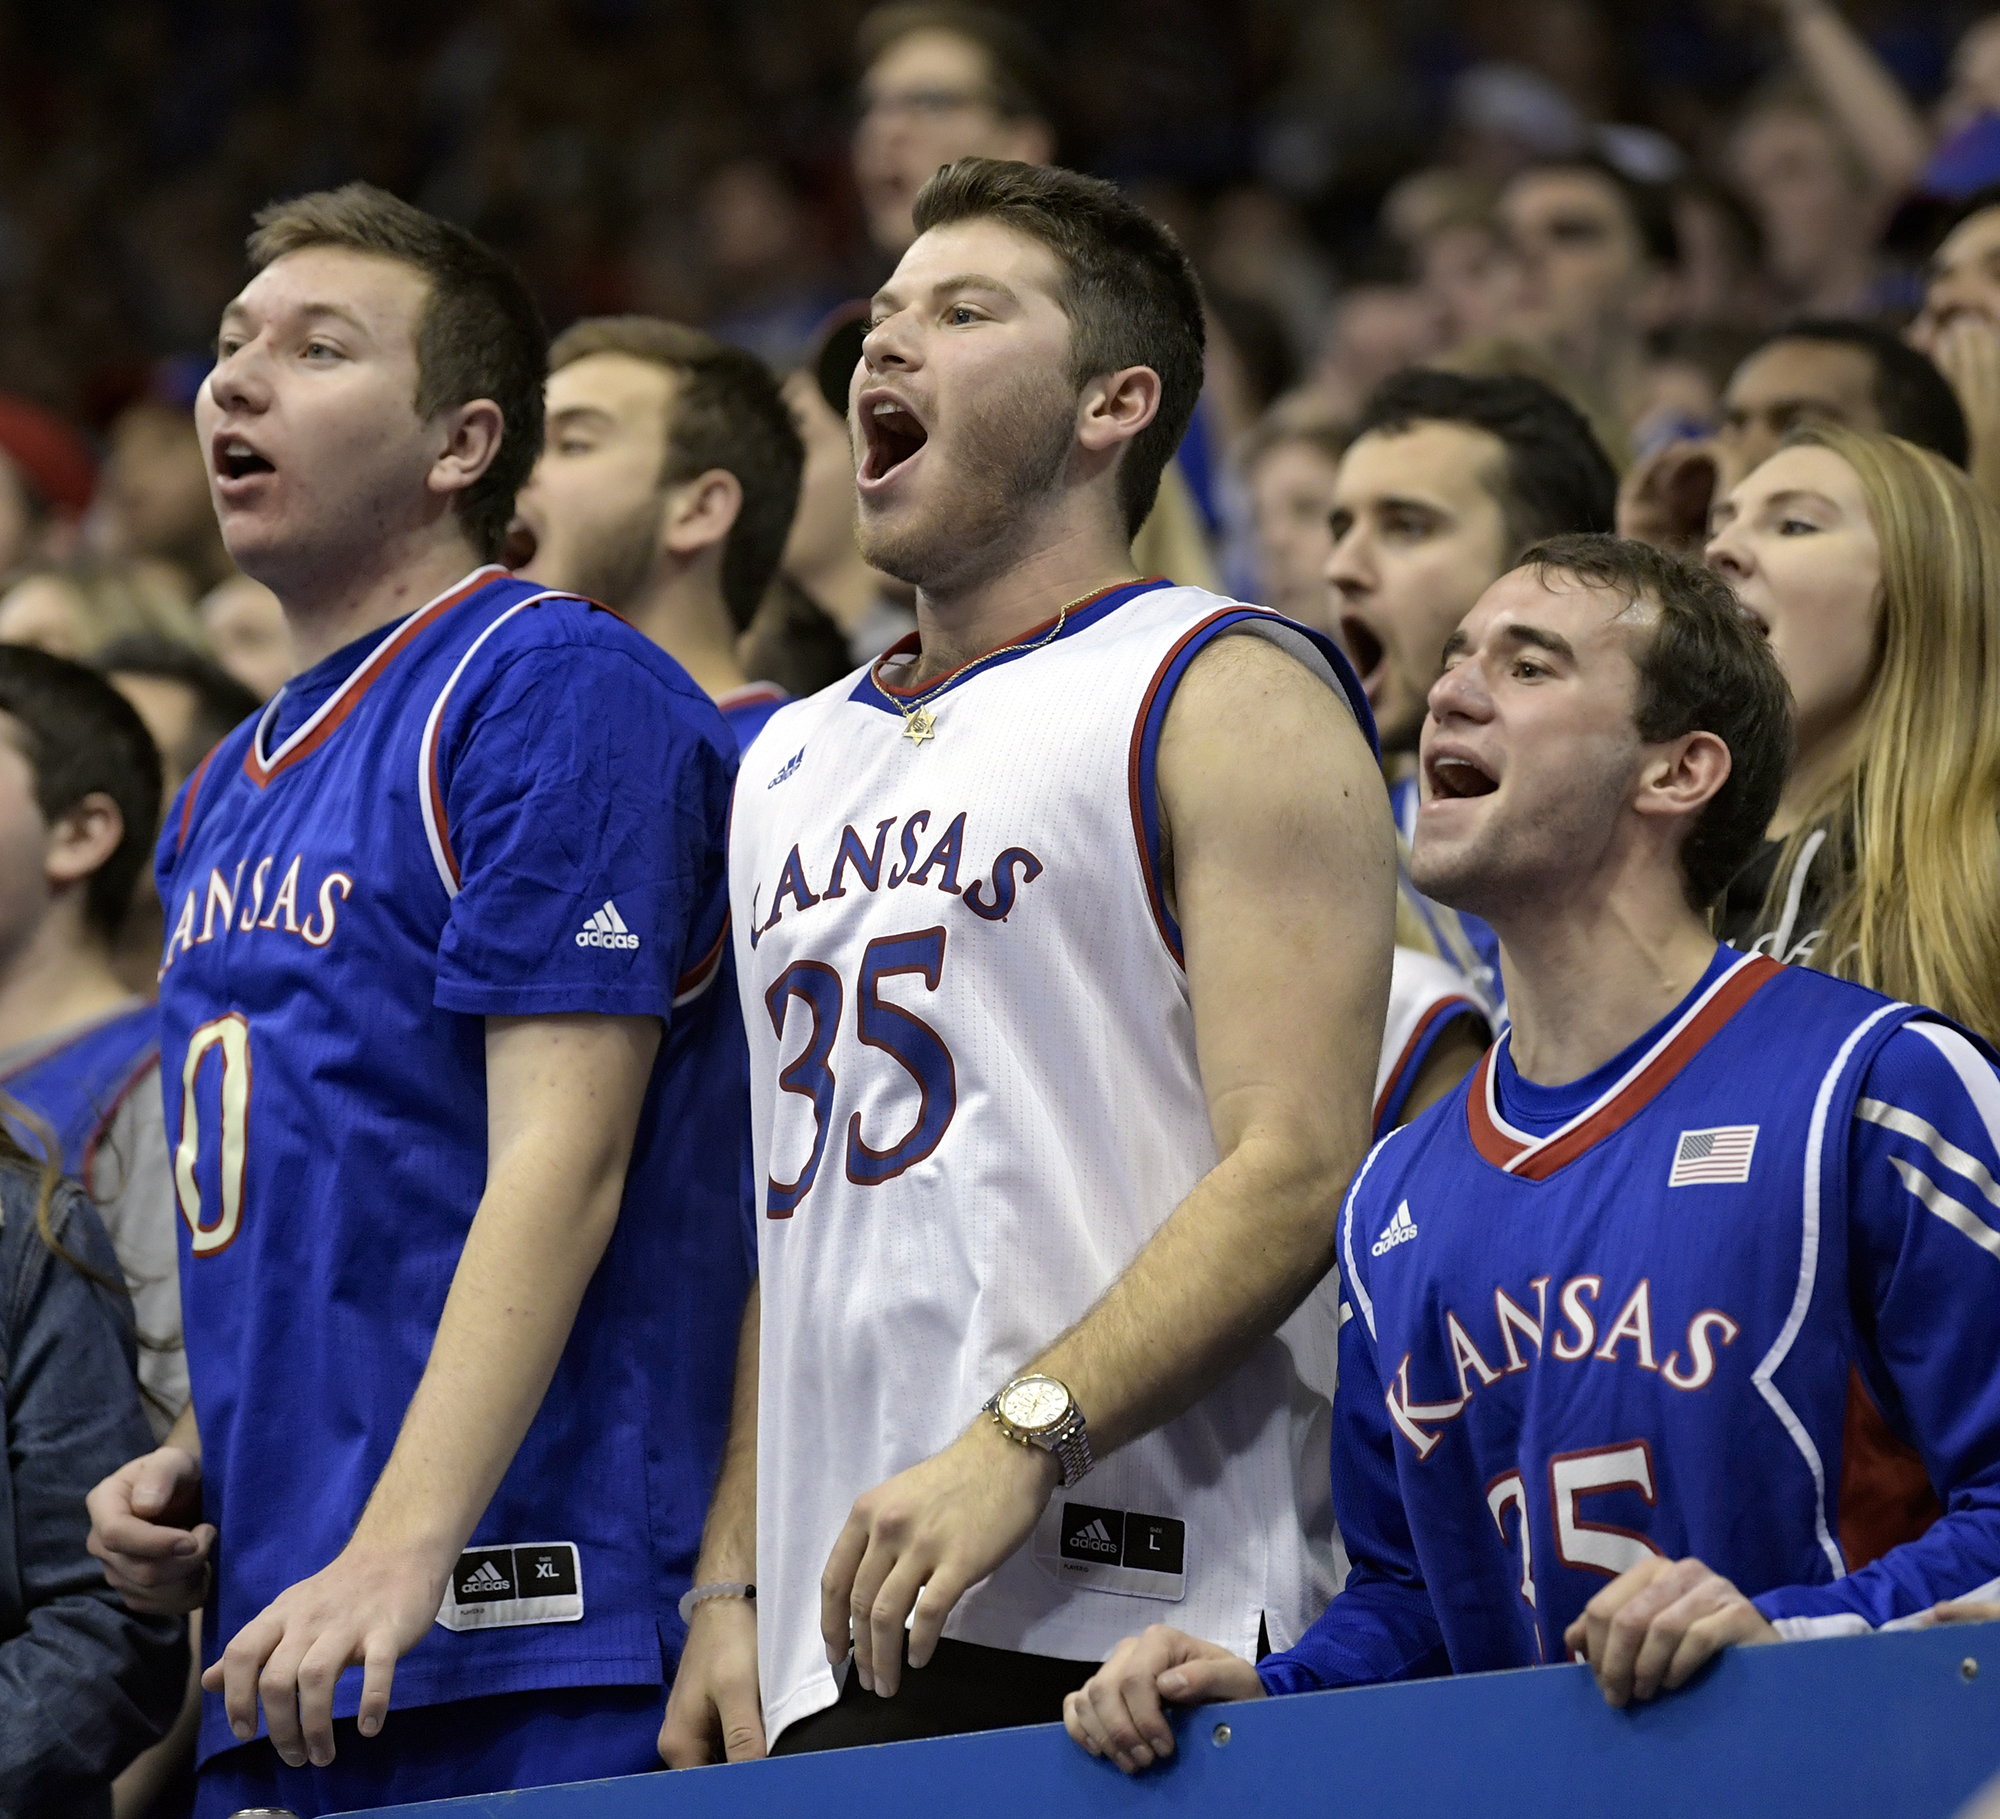 KU's surge in second half delighted the fans.